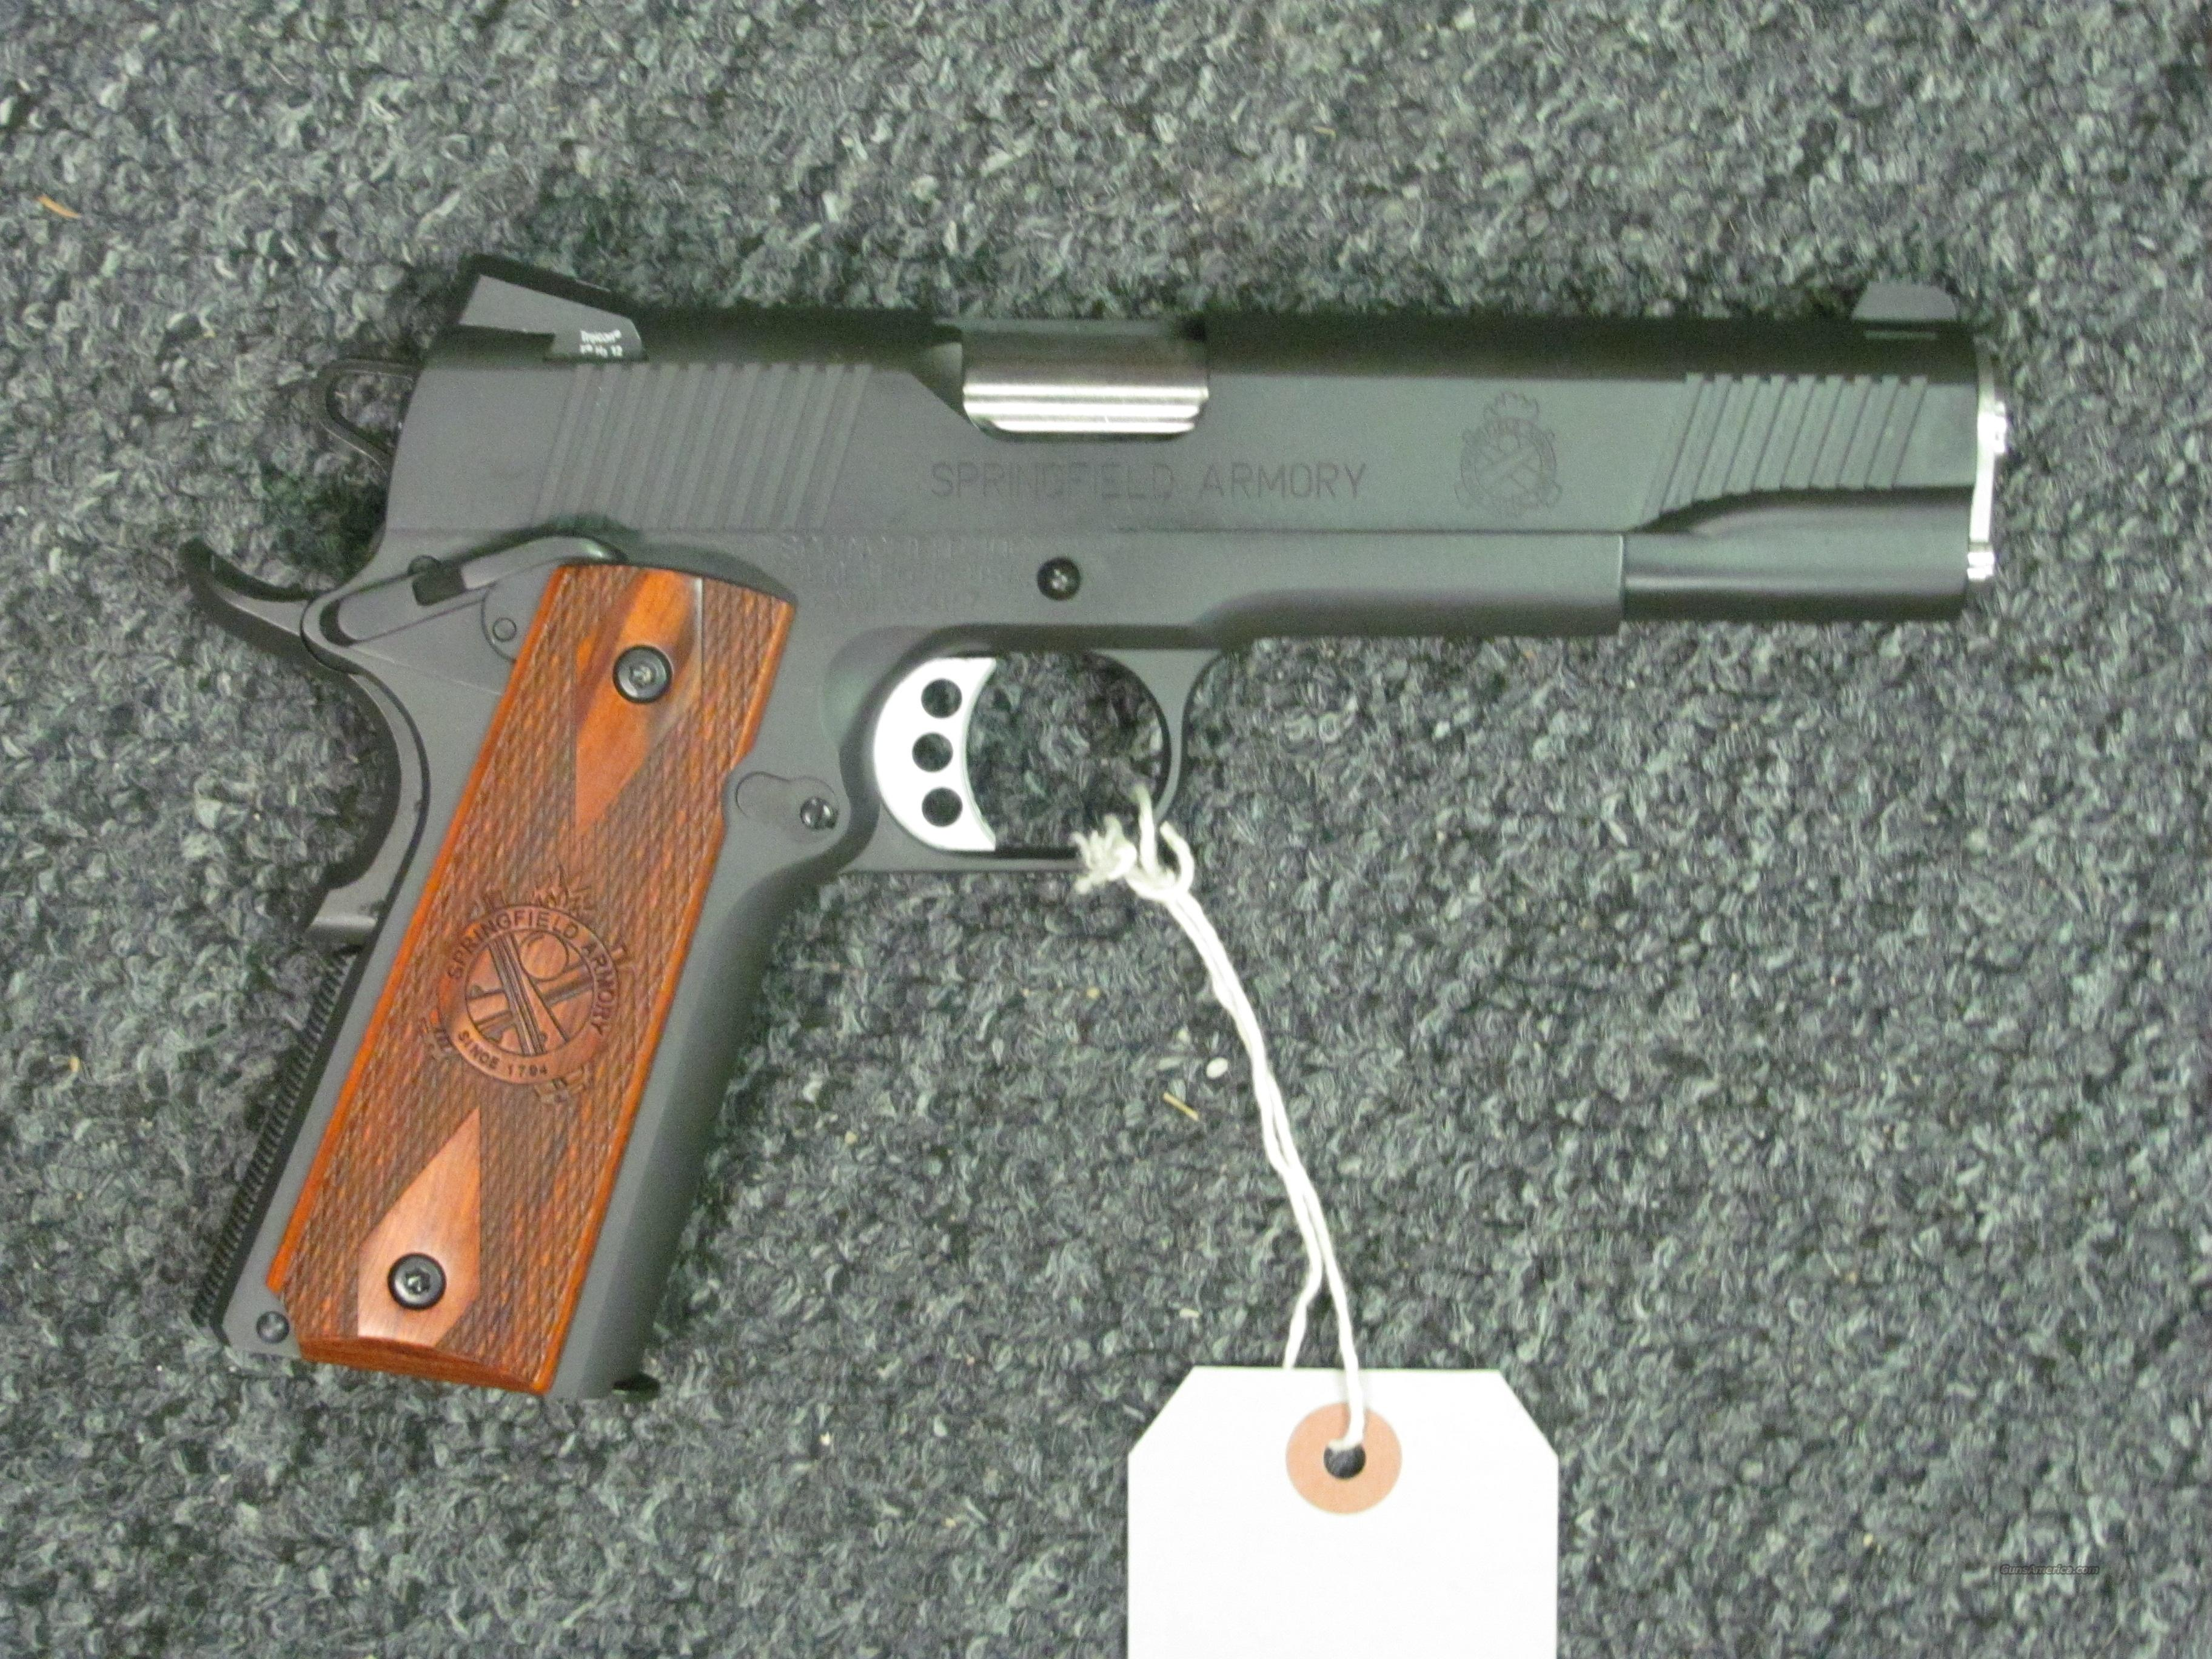 1911-A1 w/2 7 rd mags  Guns > Pistols > Springfield Armory Pistols > 1911 Type